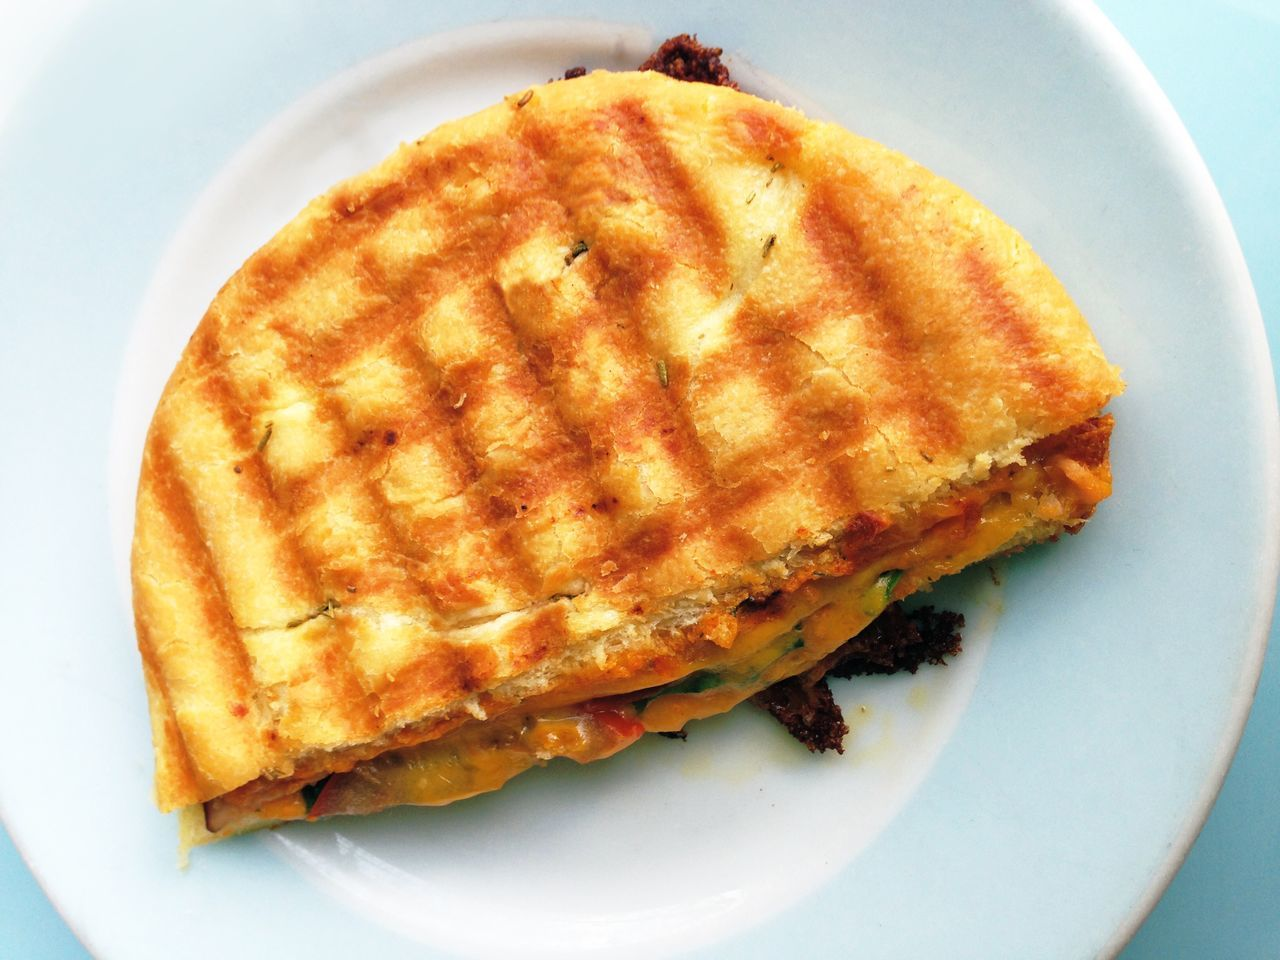 High Angle View Of Panini Served In Plate